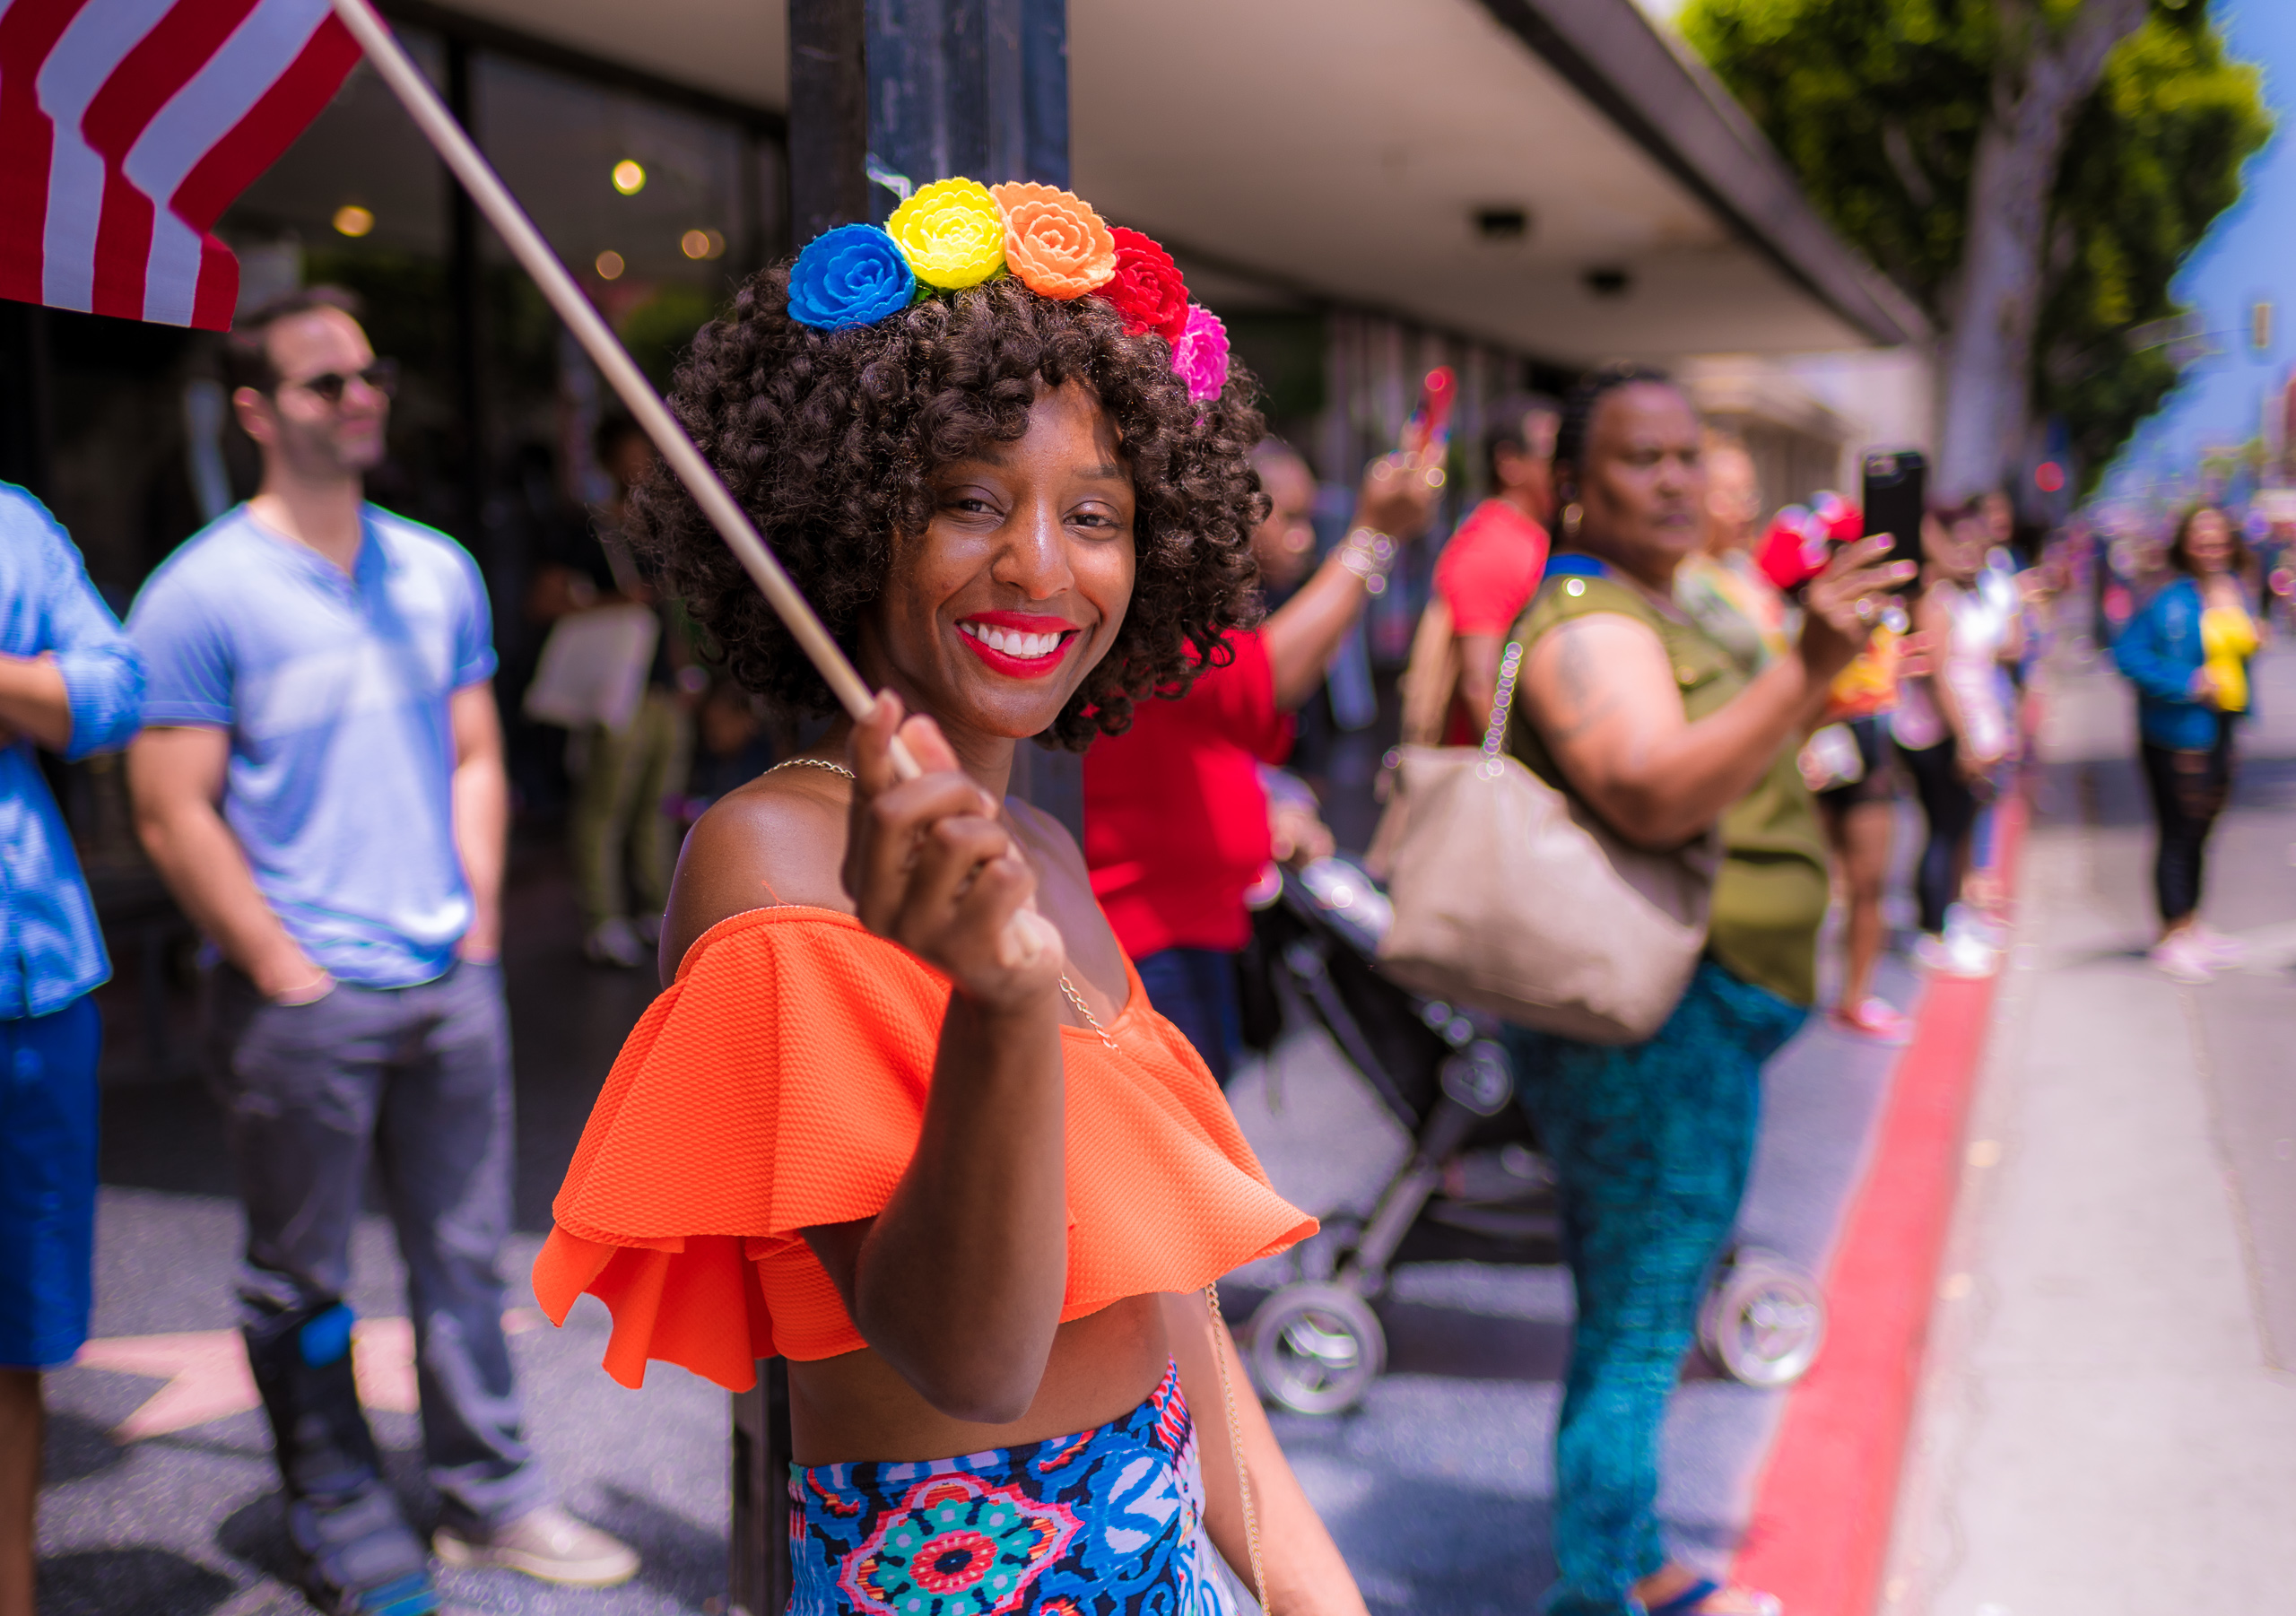 a woman watches the parade from the sidewalk. She has a rainbow assortment of flowers in her hair. She holds an American flag on a stick